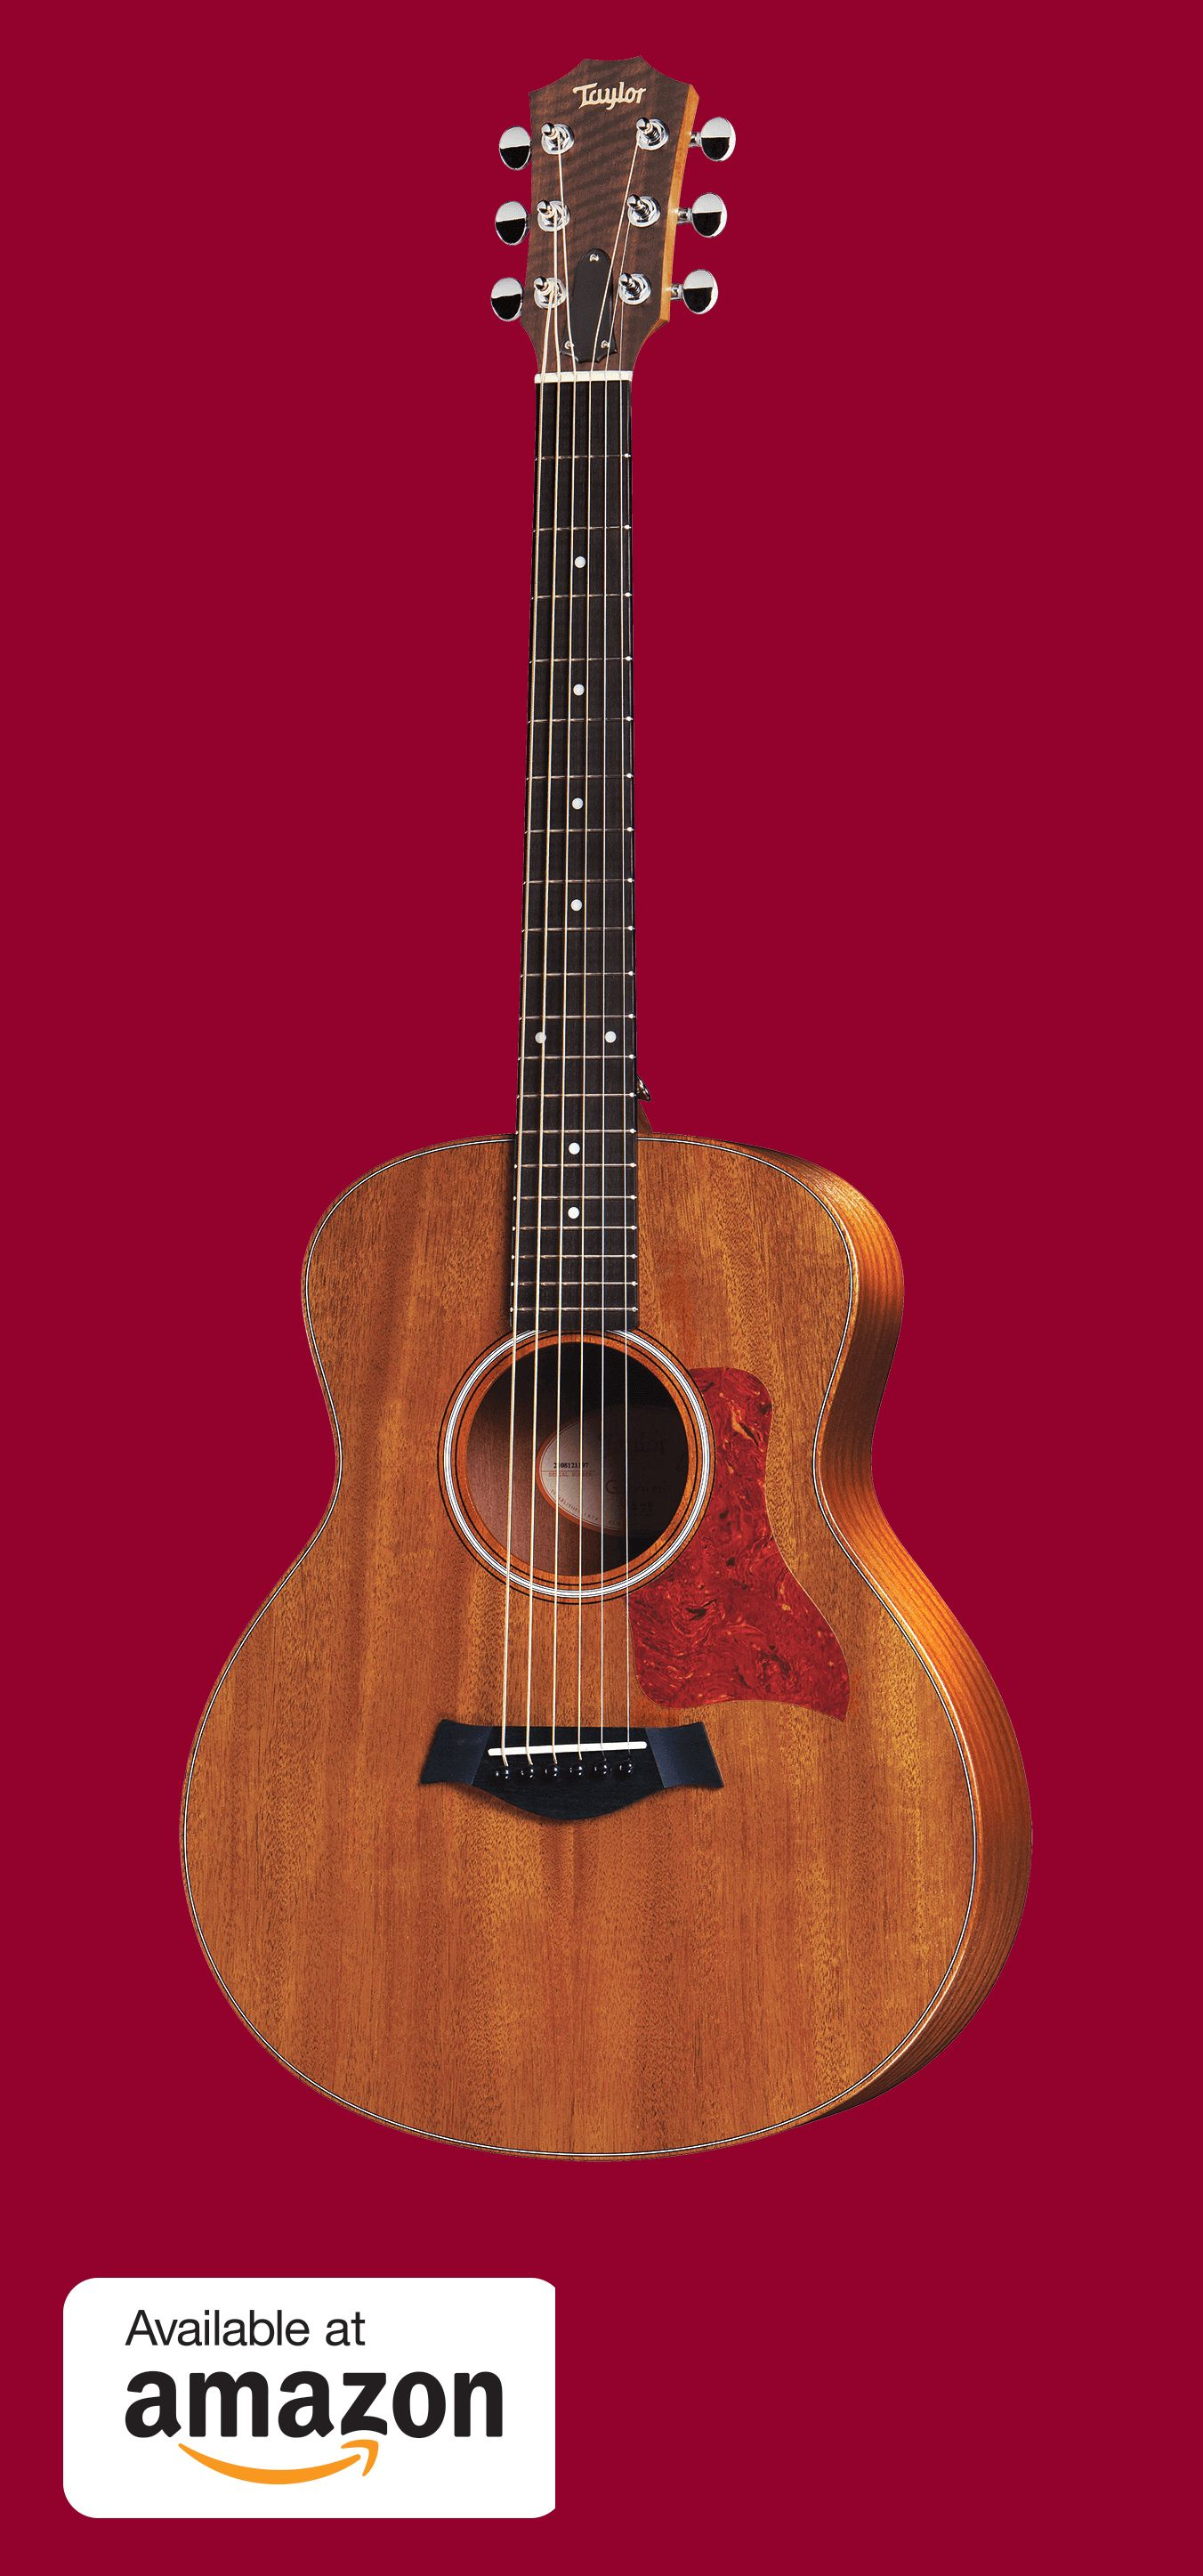 Taylor Guitars Gs Mini Once In A While A Guitar Comes Along That